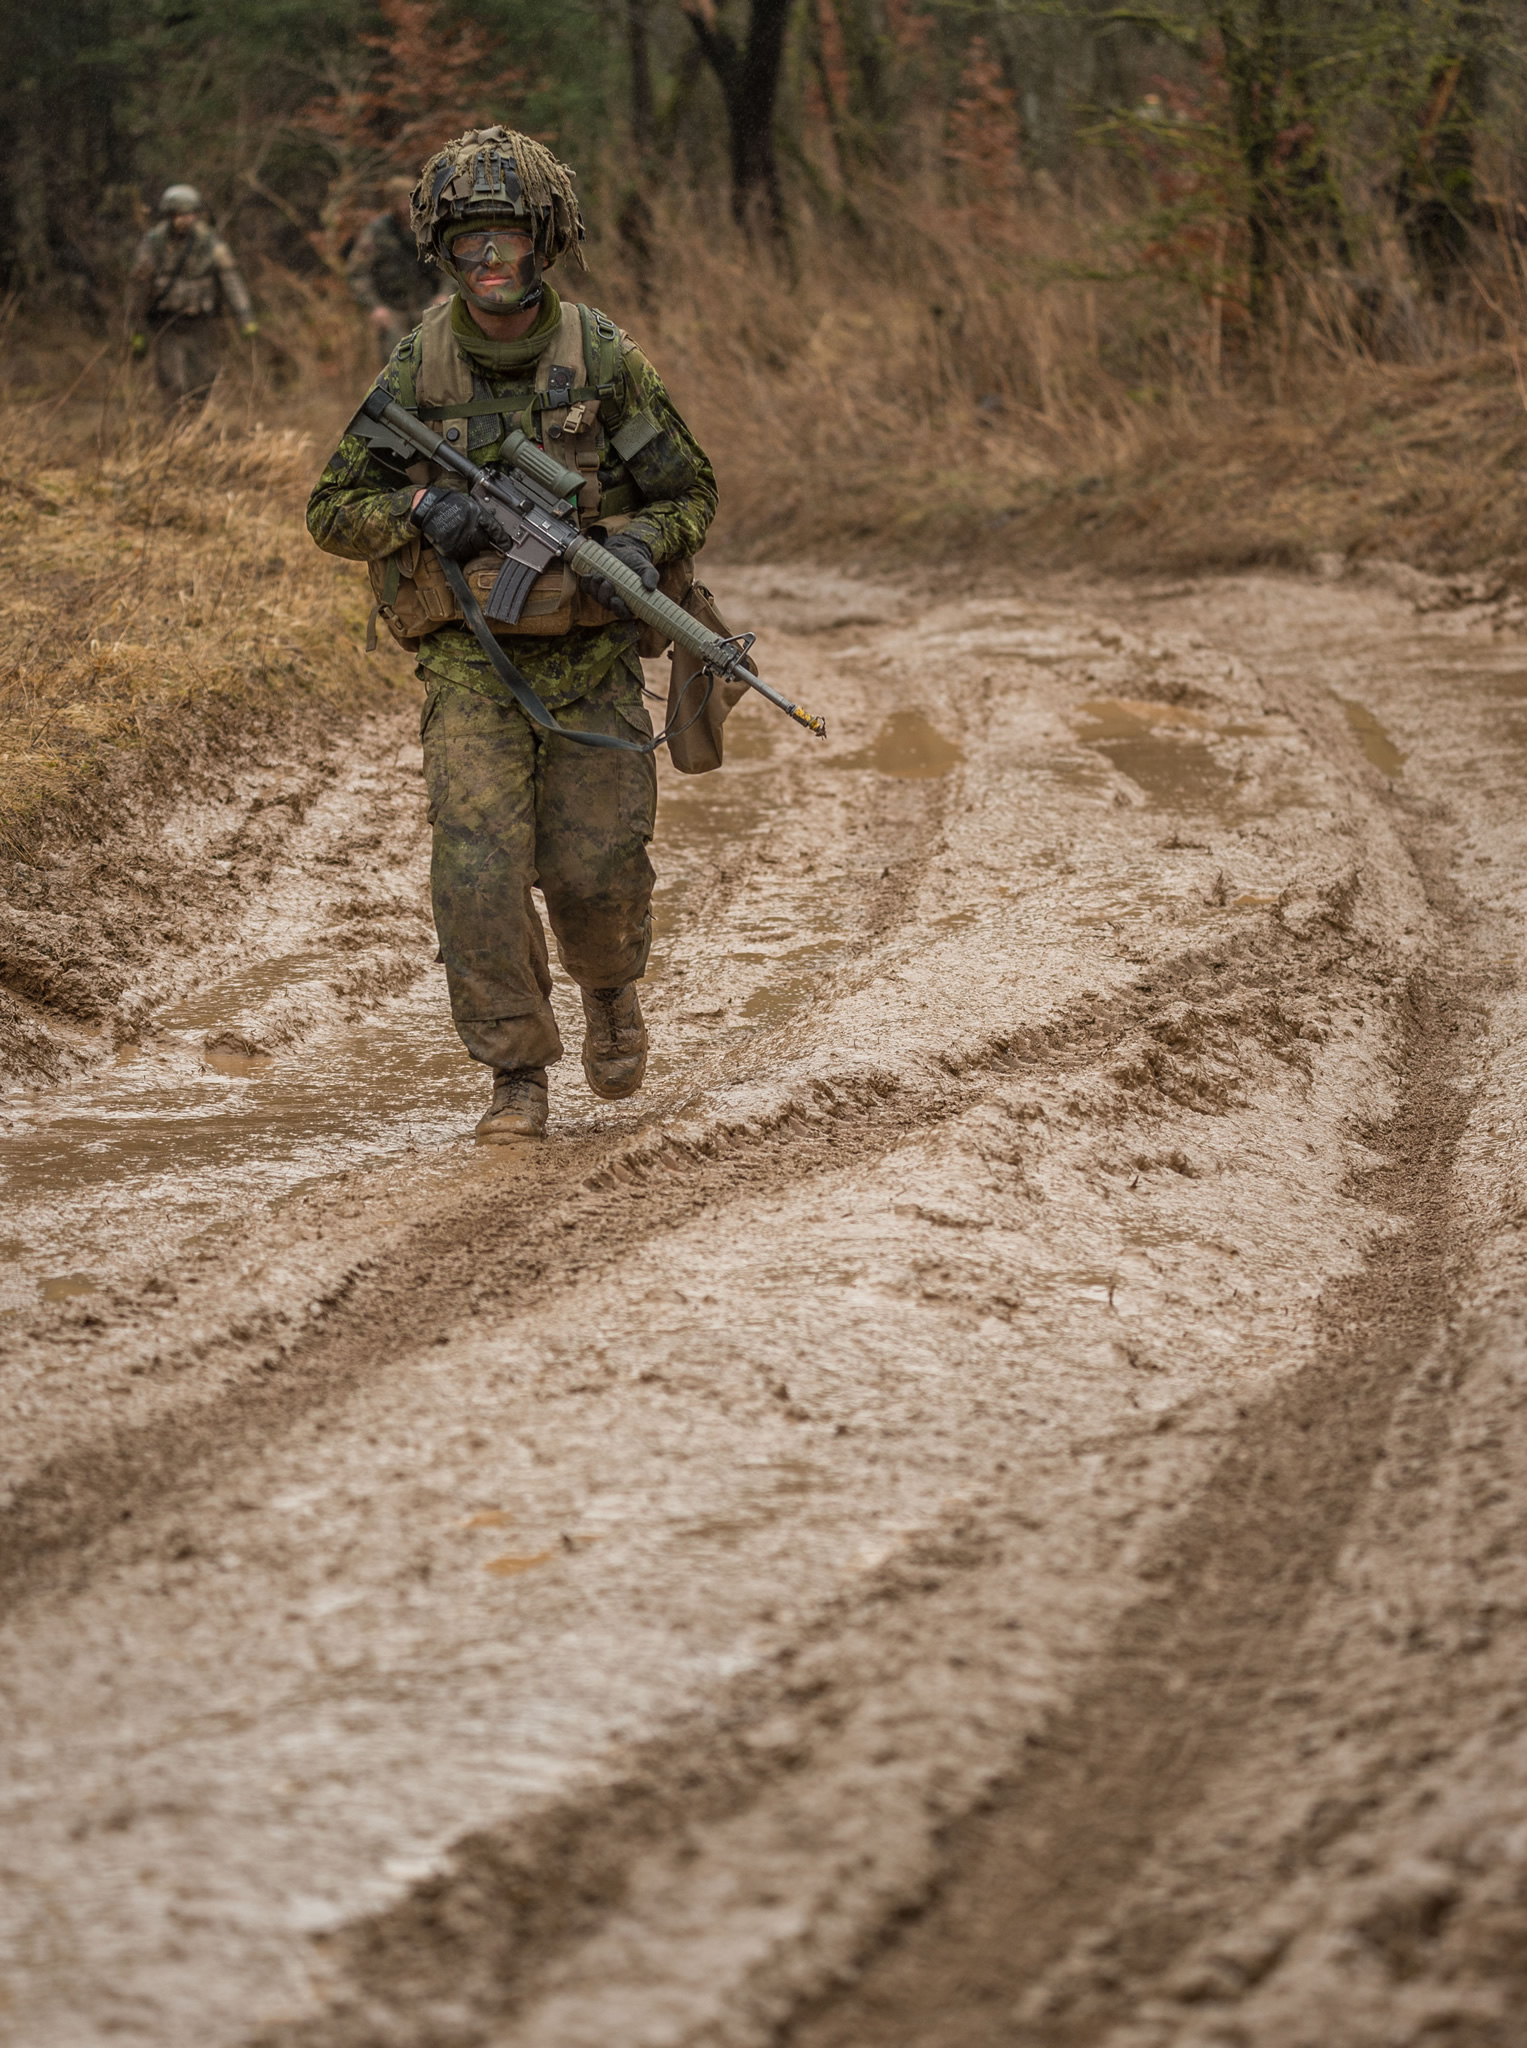 Hohenfels, Germany. March 16, 2017 – A member of  the Forward Support Group doesn't let the mud slow him down in the Hohenfels Training Area, Germany on Exercise ALLIED SPIRIT VI during Operation REASSURANCE .